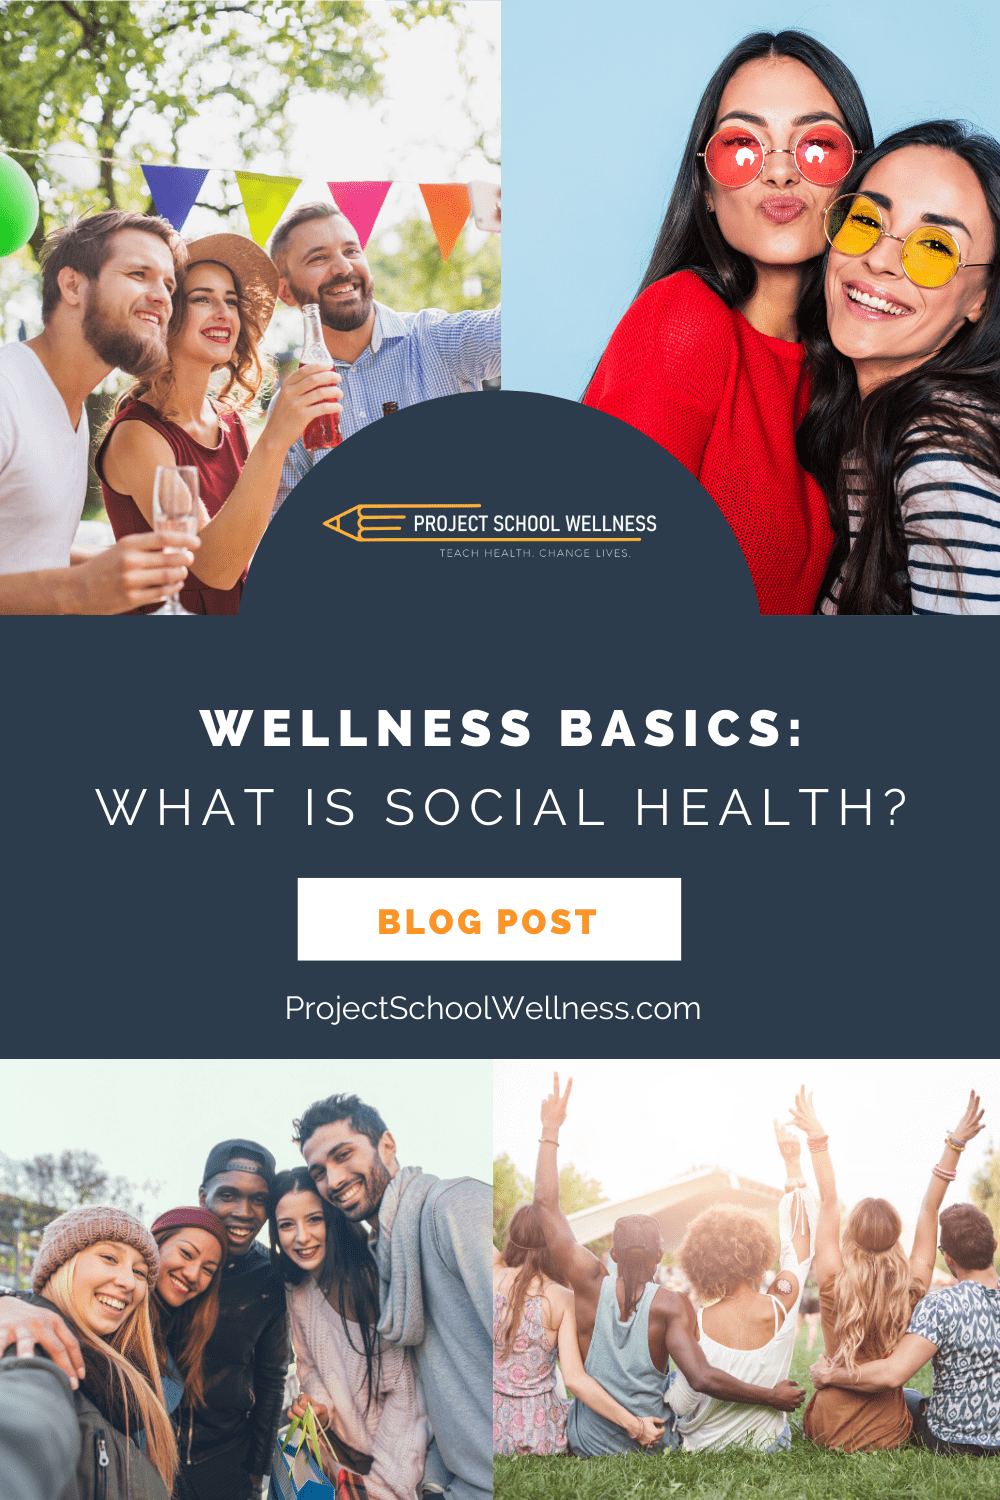 What is Social Health? A look at what social health is, why it matters, and how to teach social health to to your students